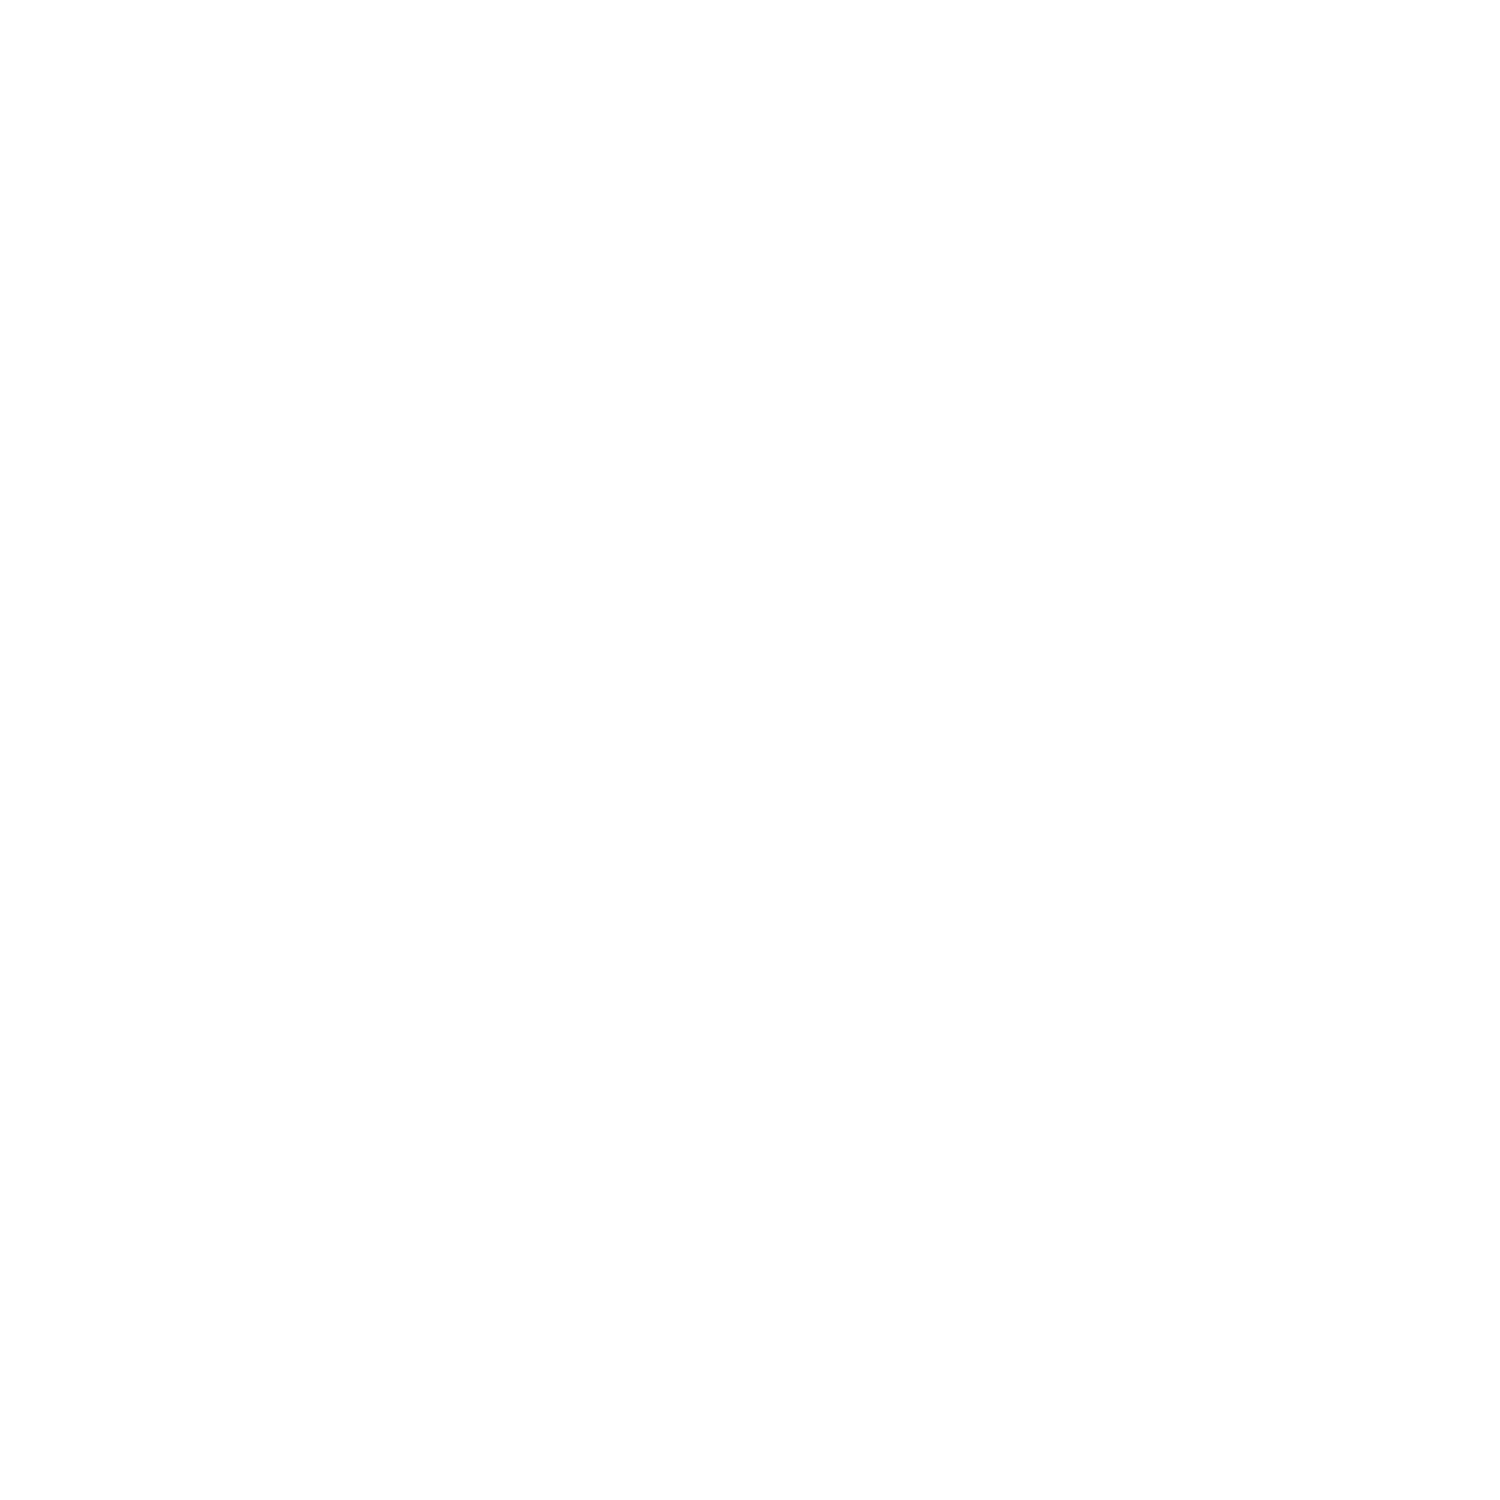 houston welcomes refugees